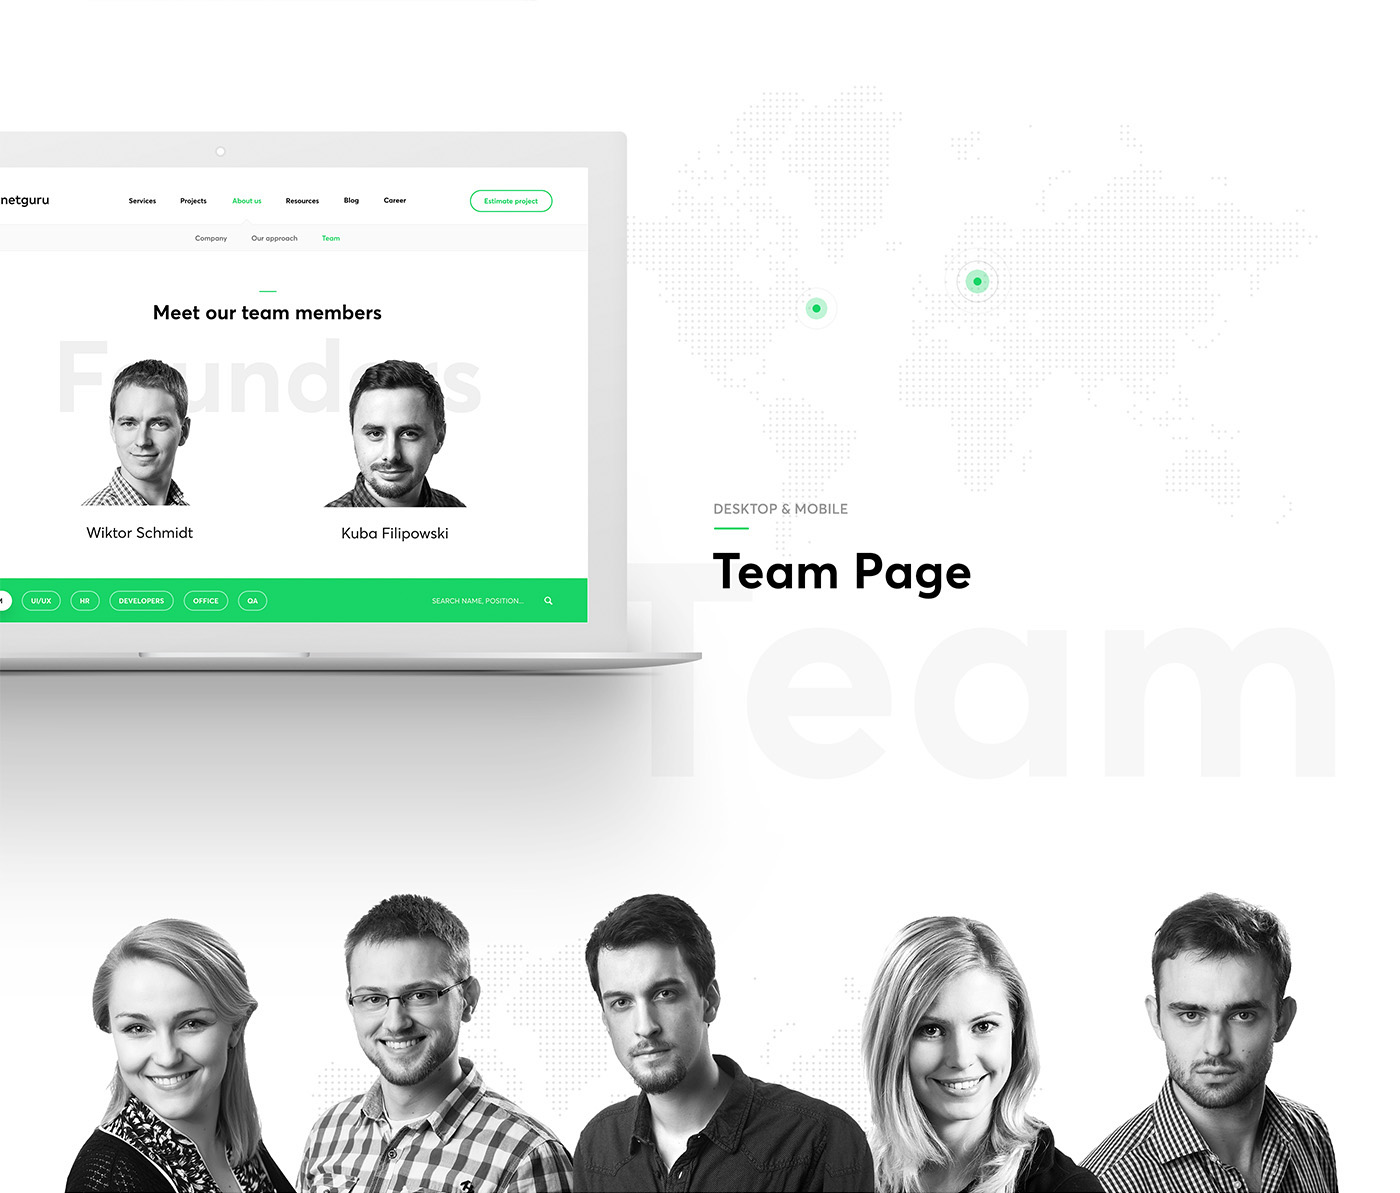 landing page agency design about us app home contact Testimonials services mobile